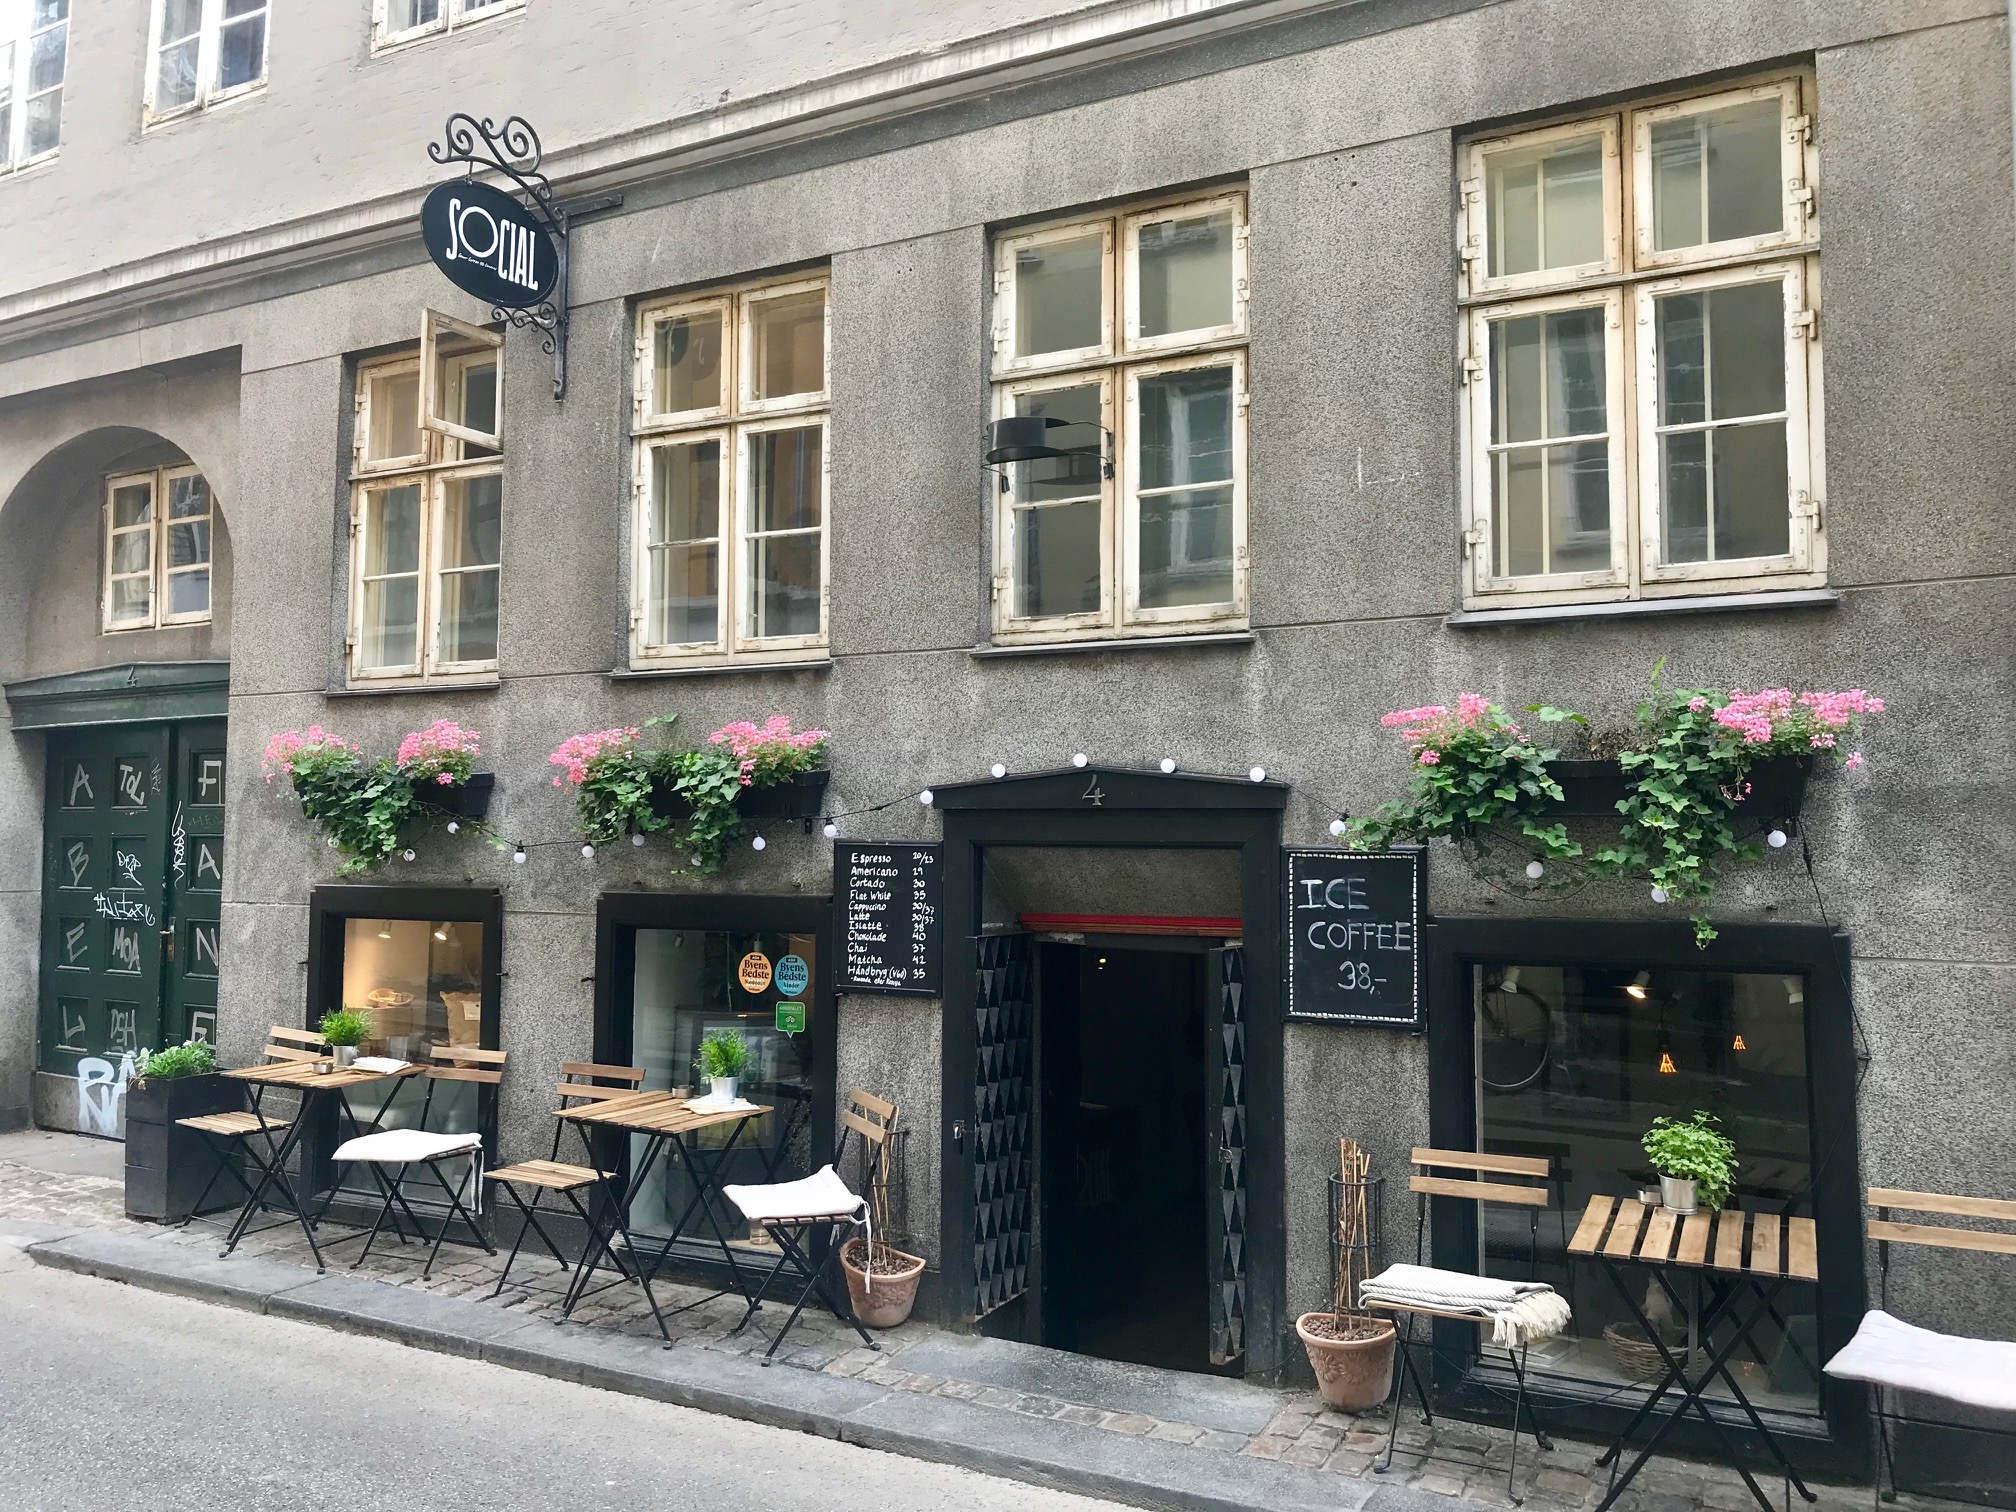 exterior-of-cafe-social-coffee-copenhagen